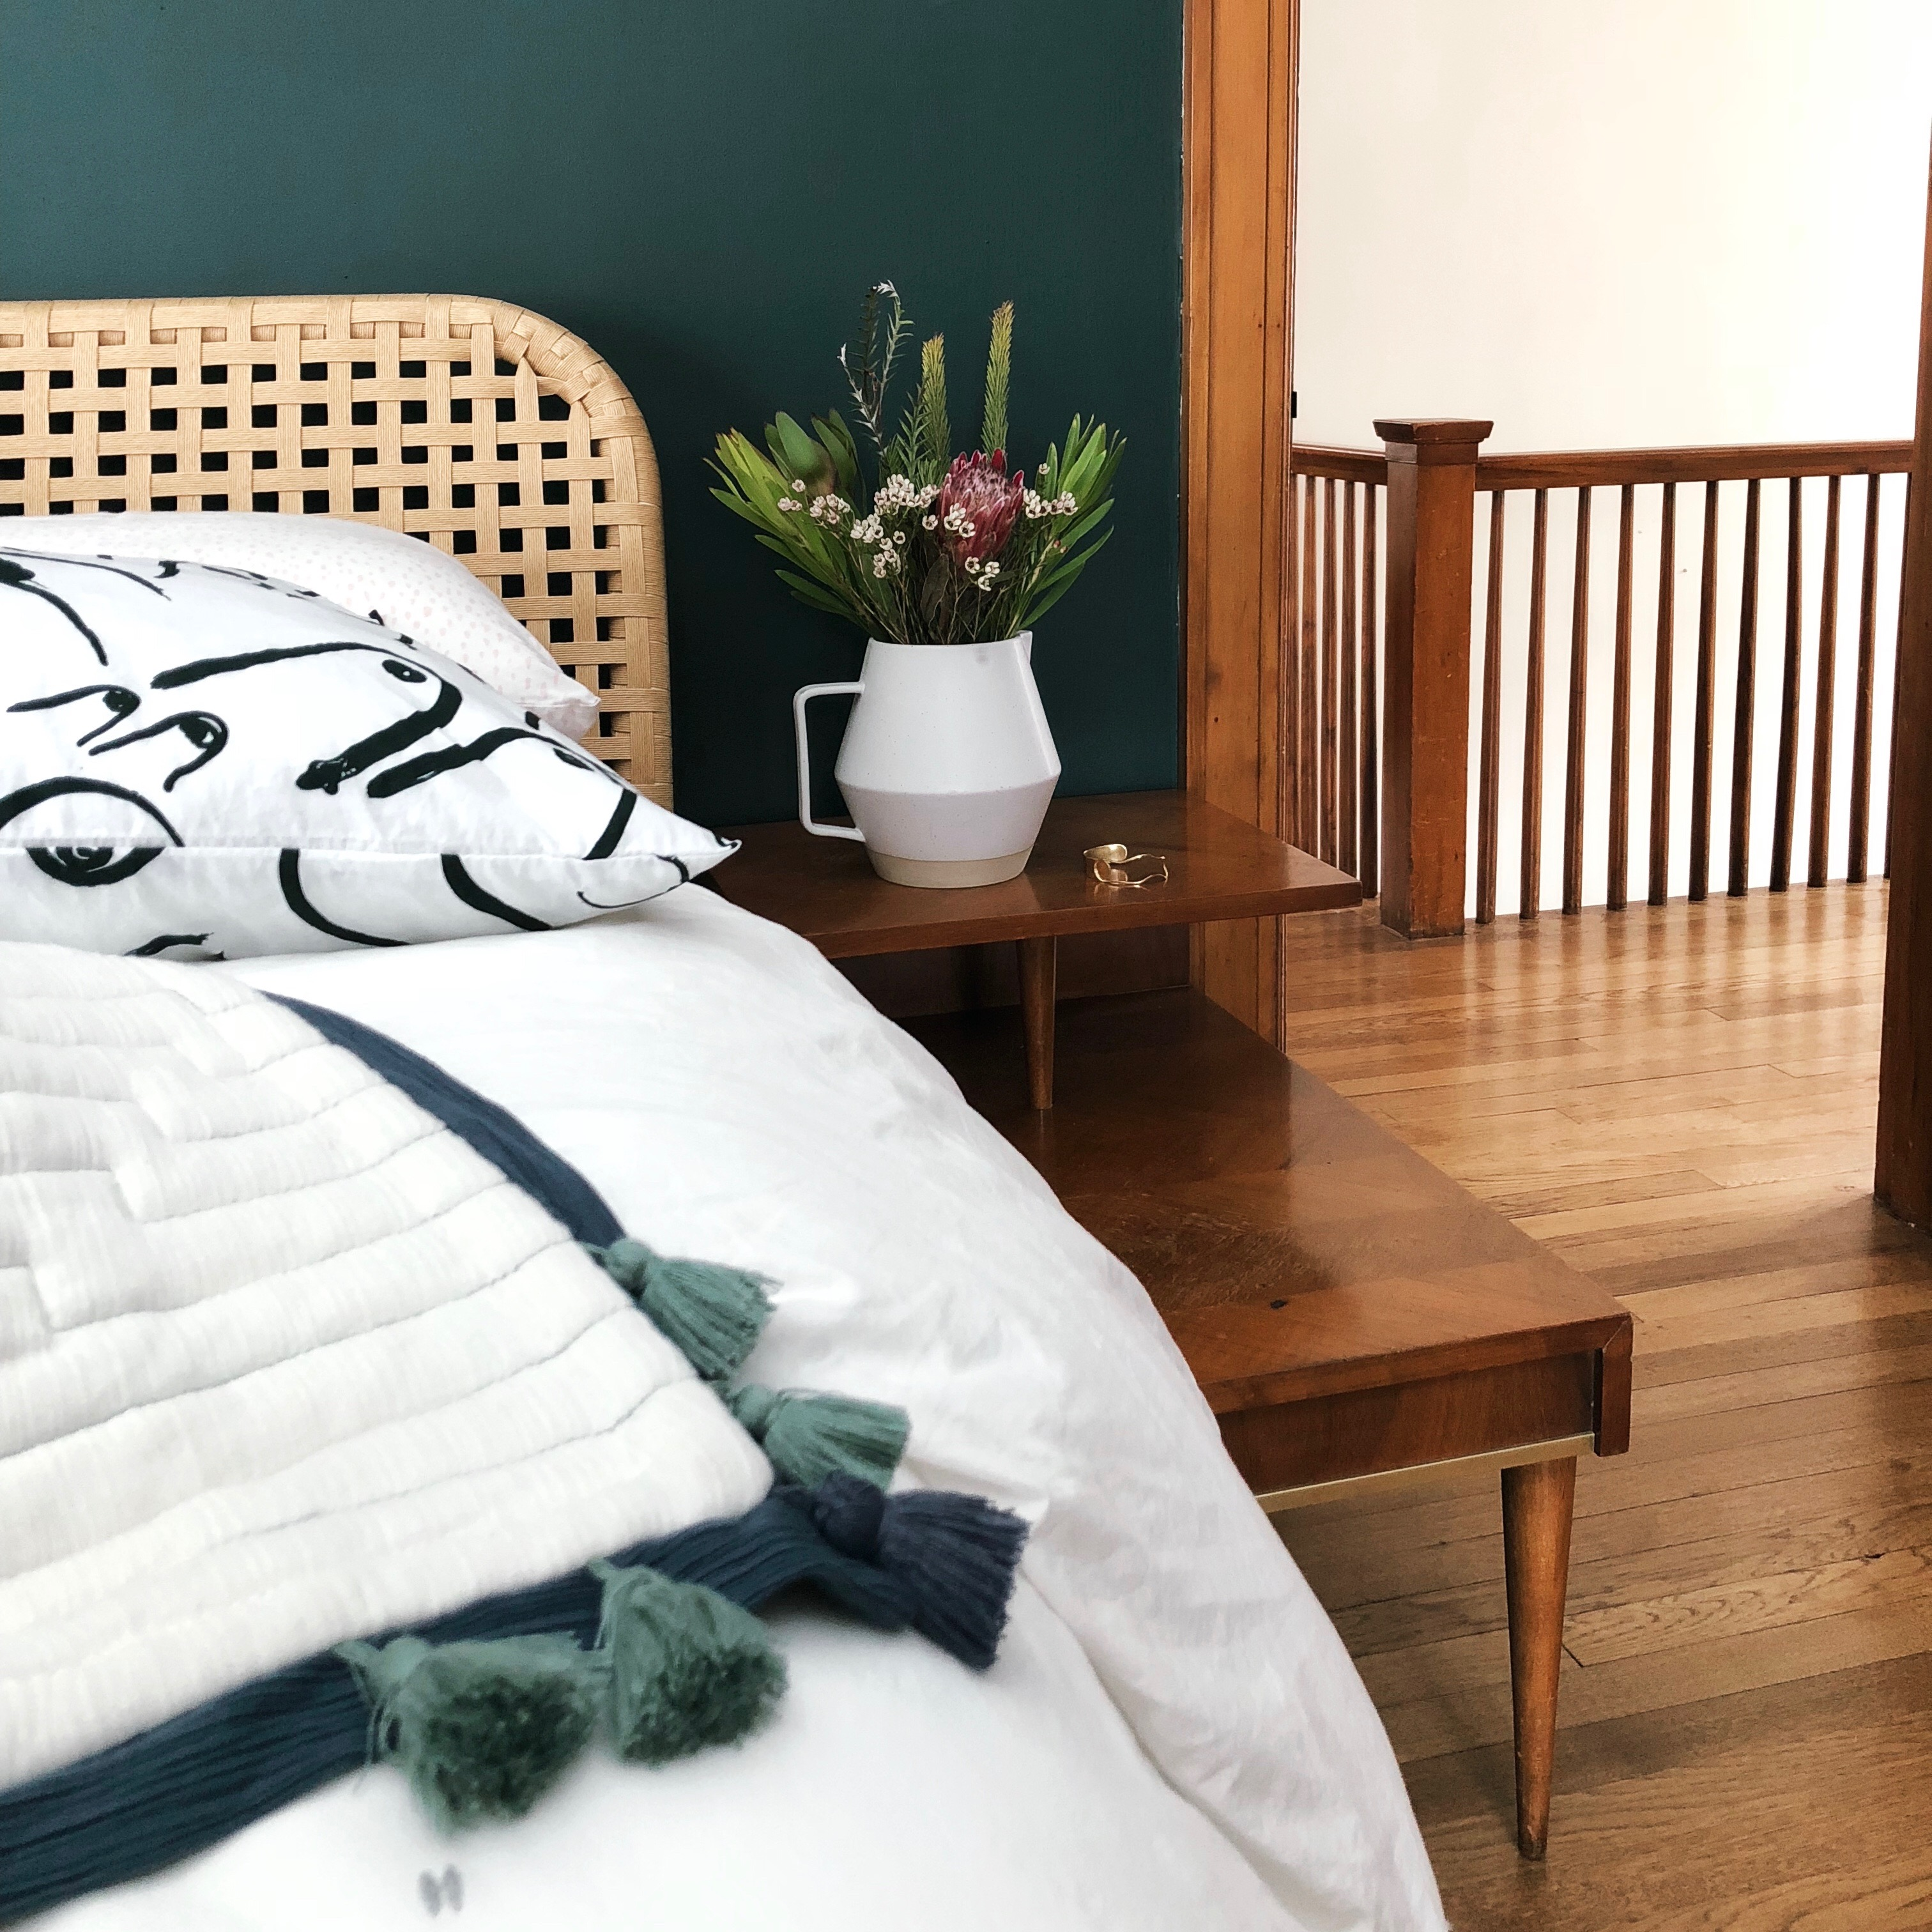 Green Guest Bedroom with Vase and Tassel Quilt